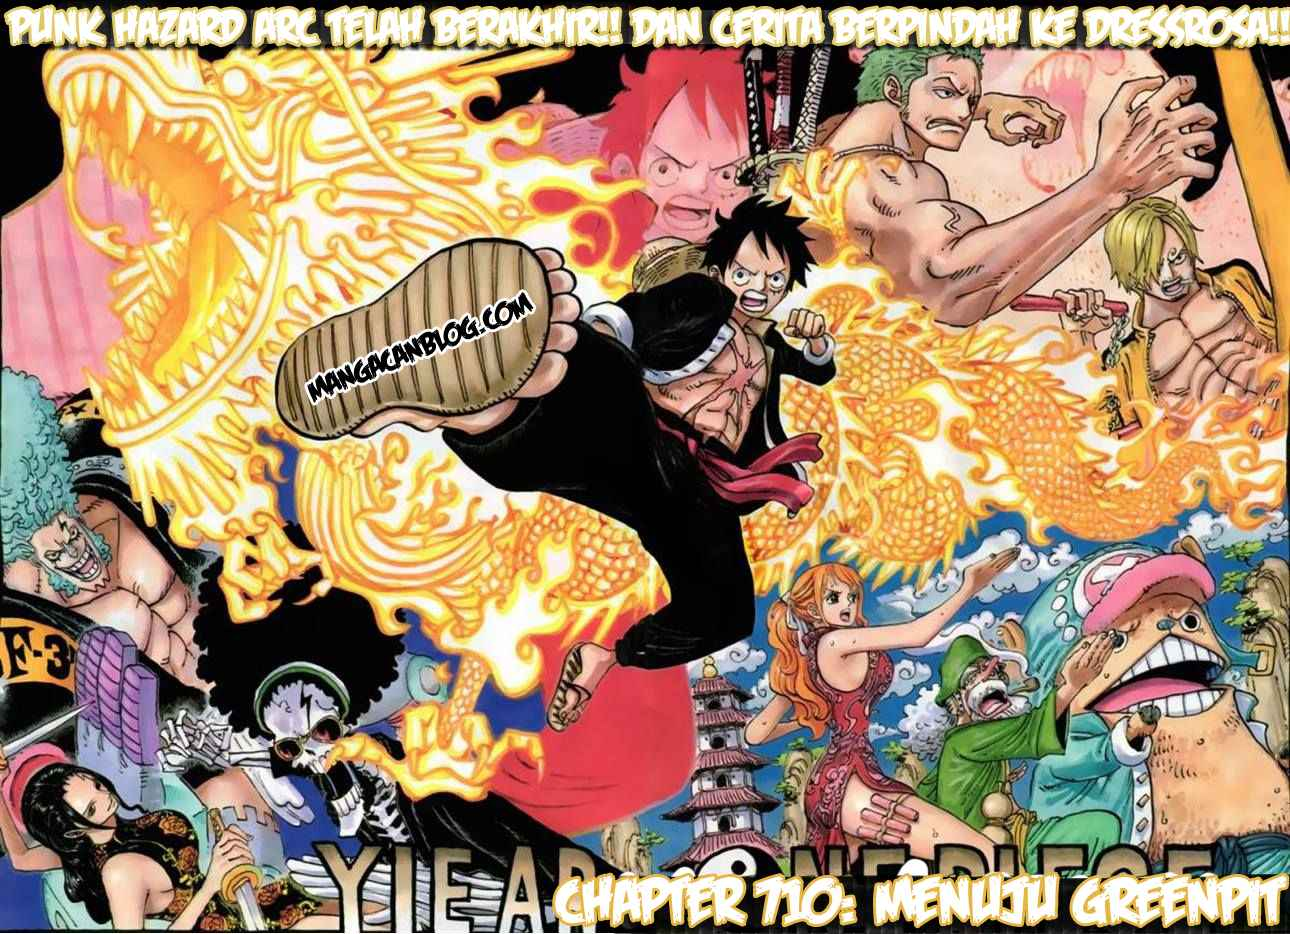 Komik one piece 710 711 Indonesia one piece 710 Terbaru 0|Baca Manga Komik Indonesia|Mangacan